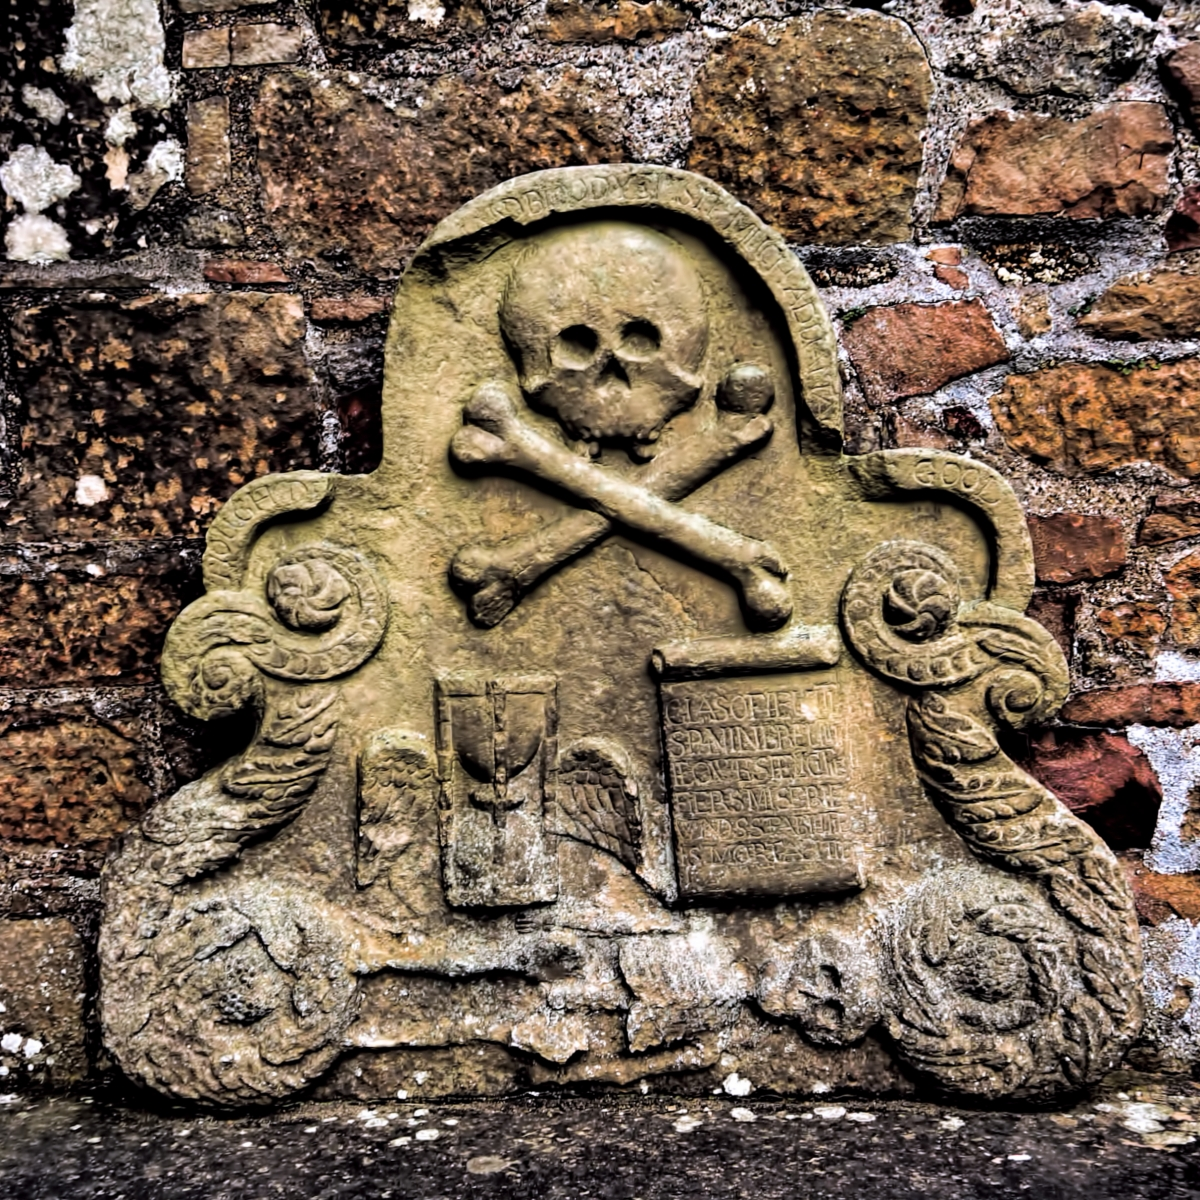 Scottish graveyard symbols on a medieval tombstone.